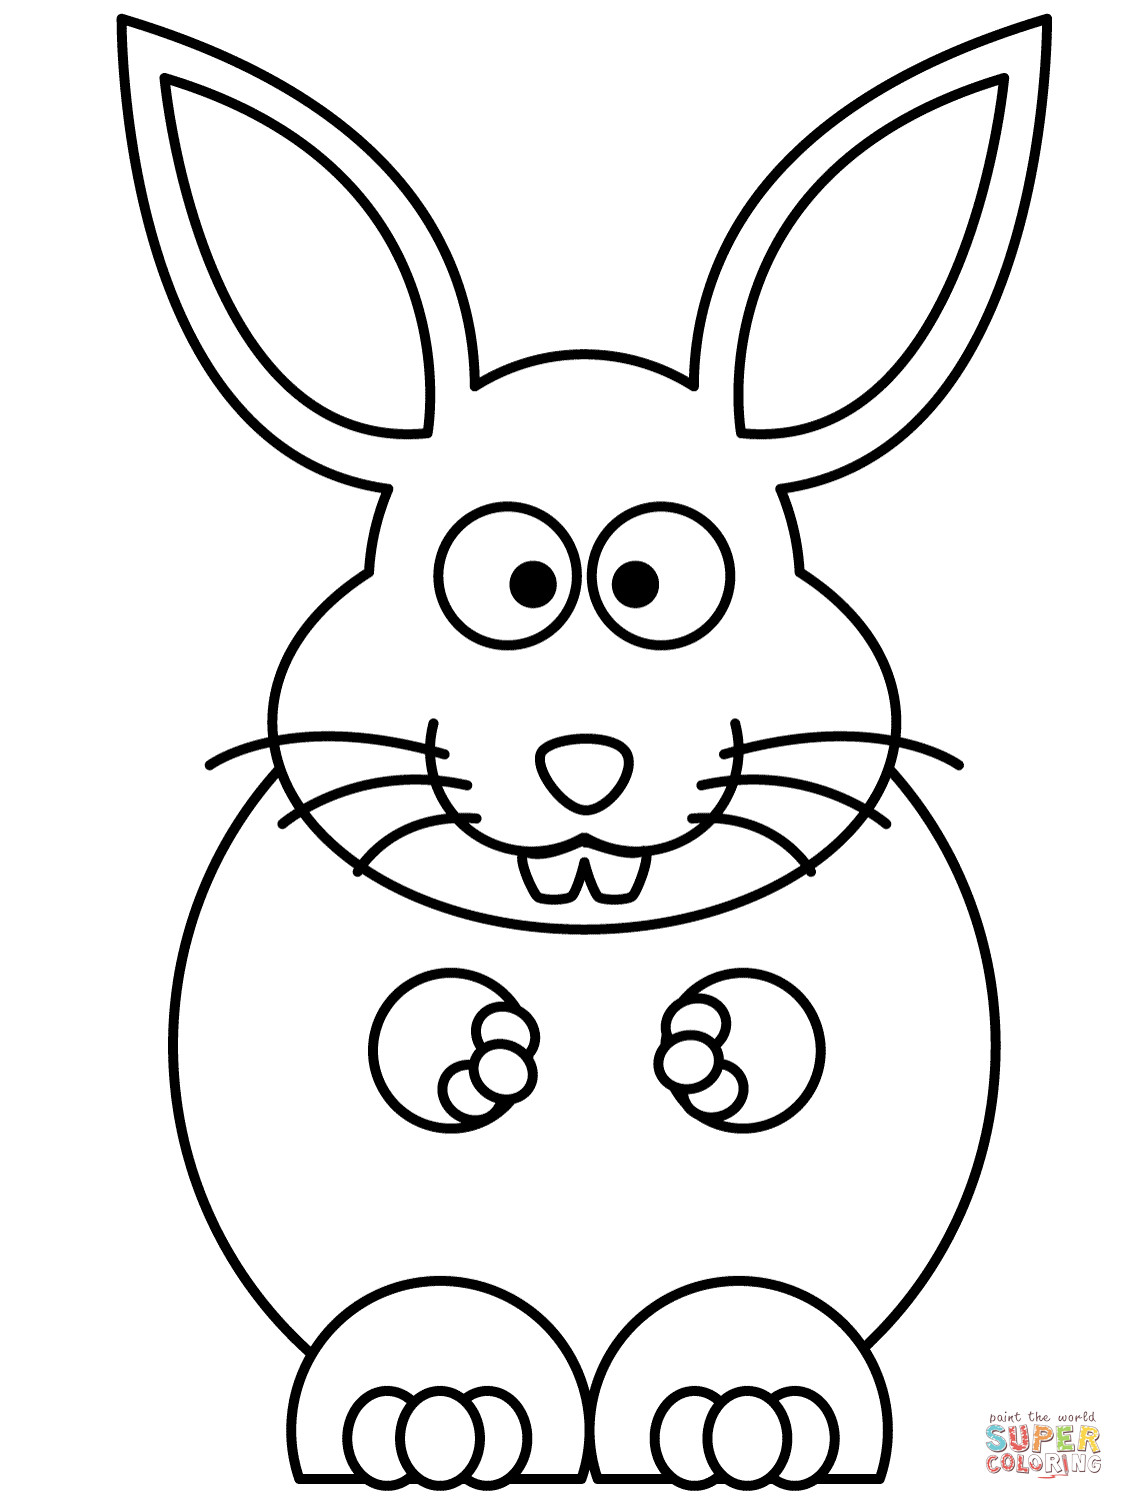 bunny coloring sheets free printable 60 rabbit shape templates and crafts colouring pages printable coloring free bunny sheets